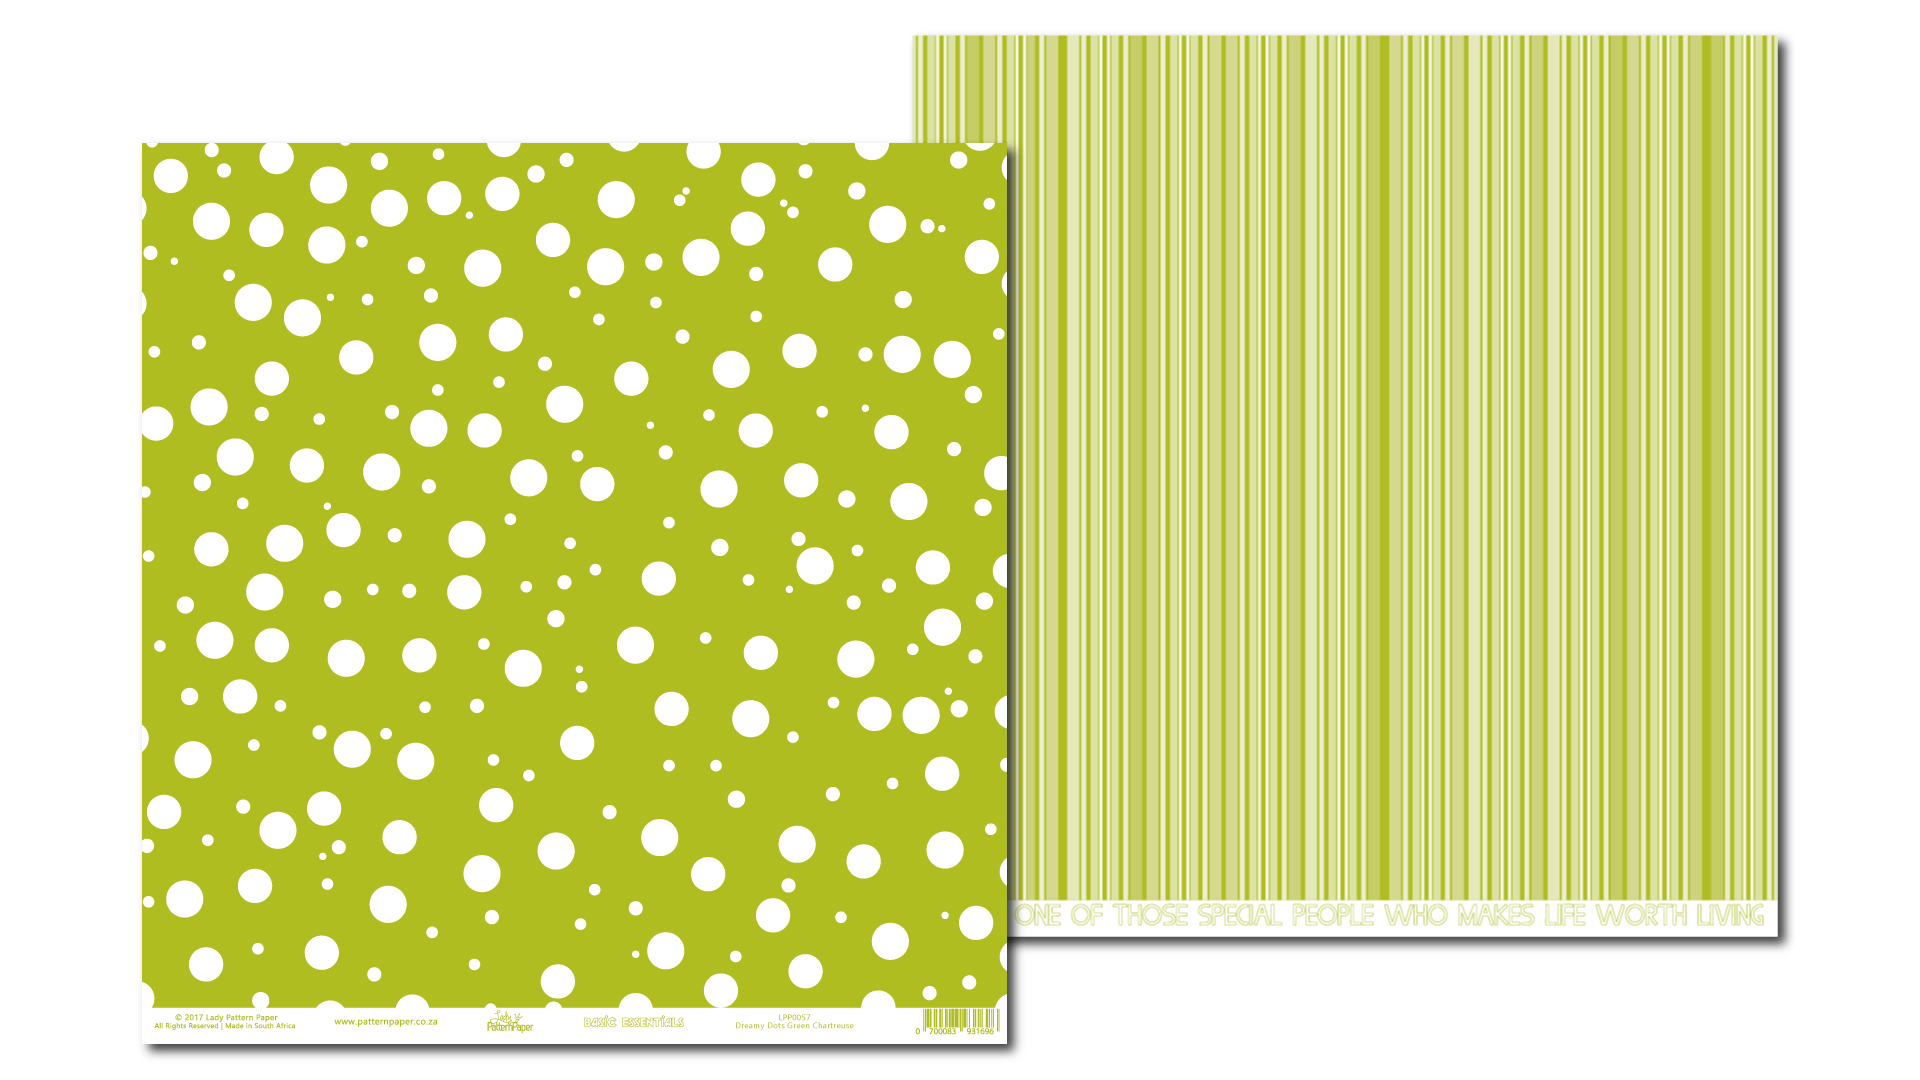 LPP0057 - Basic Essentials - Dreamy Dots - Green Chartreuse